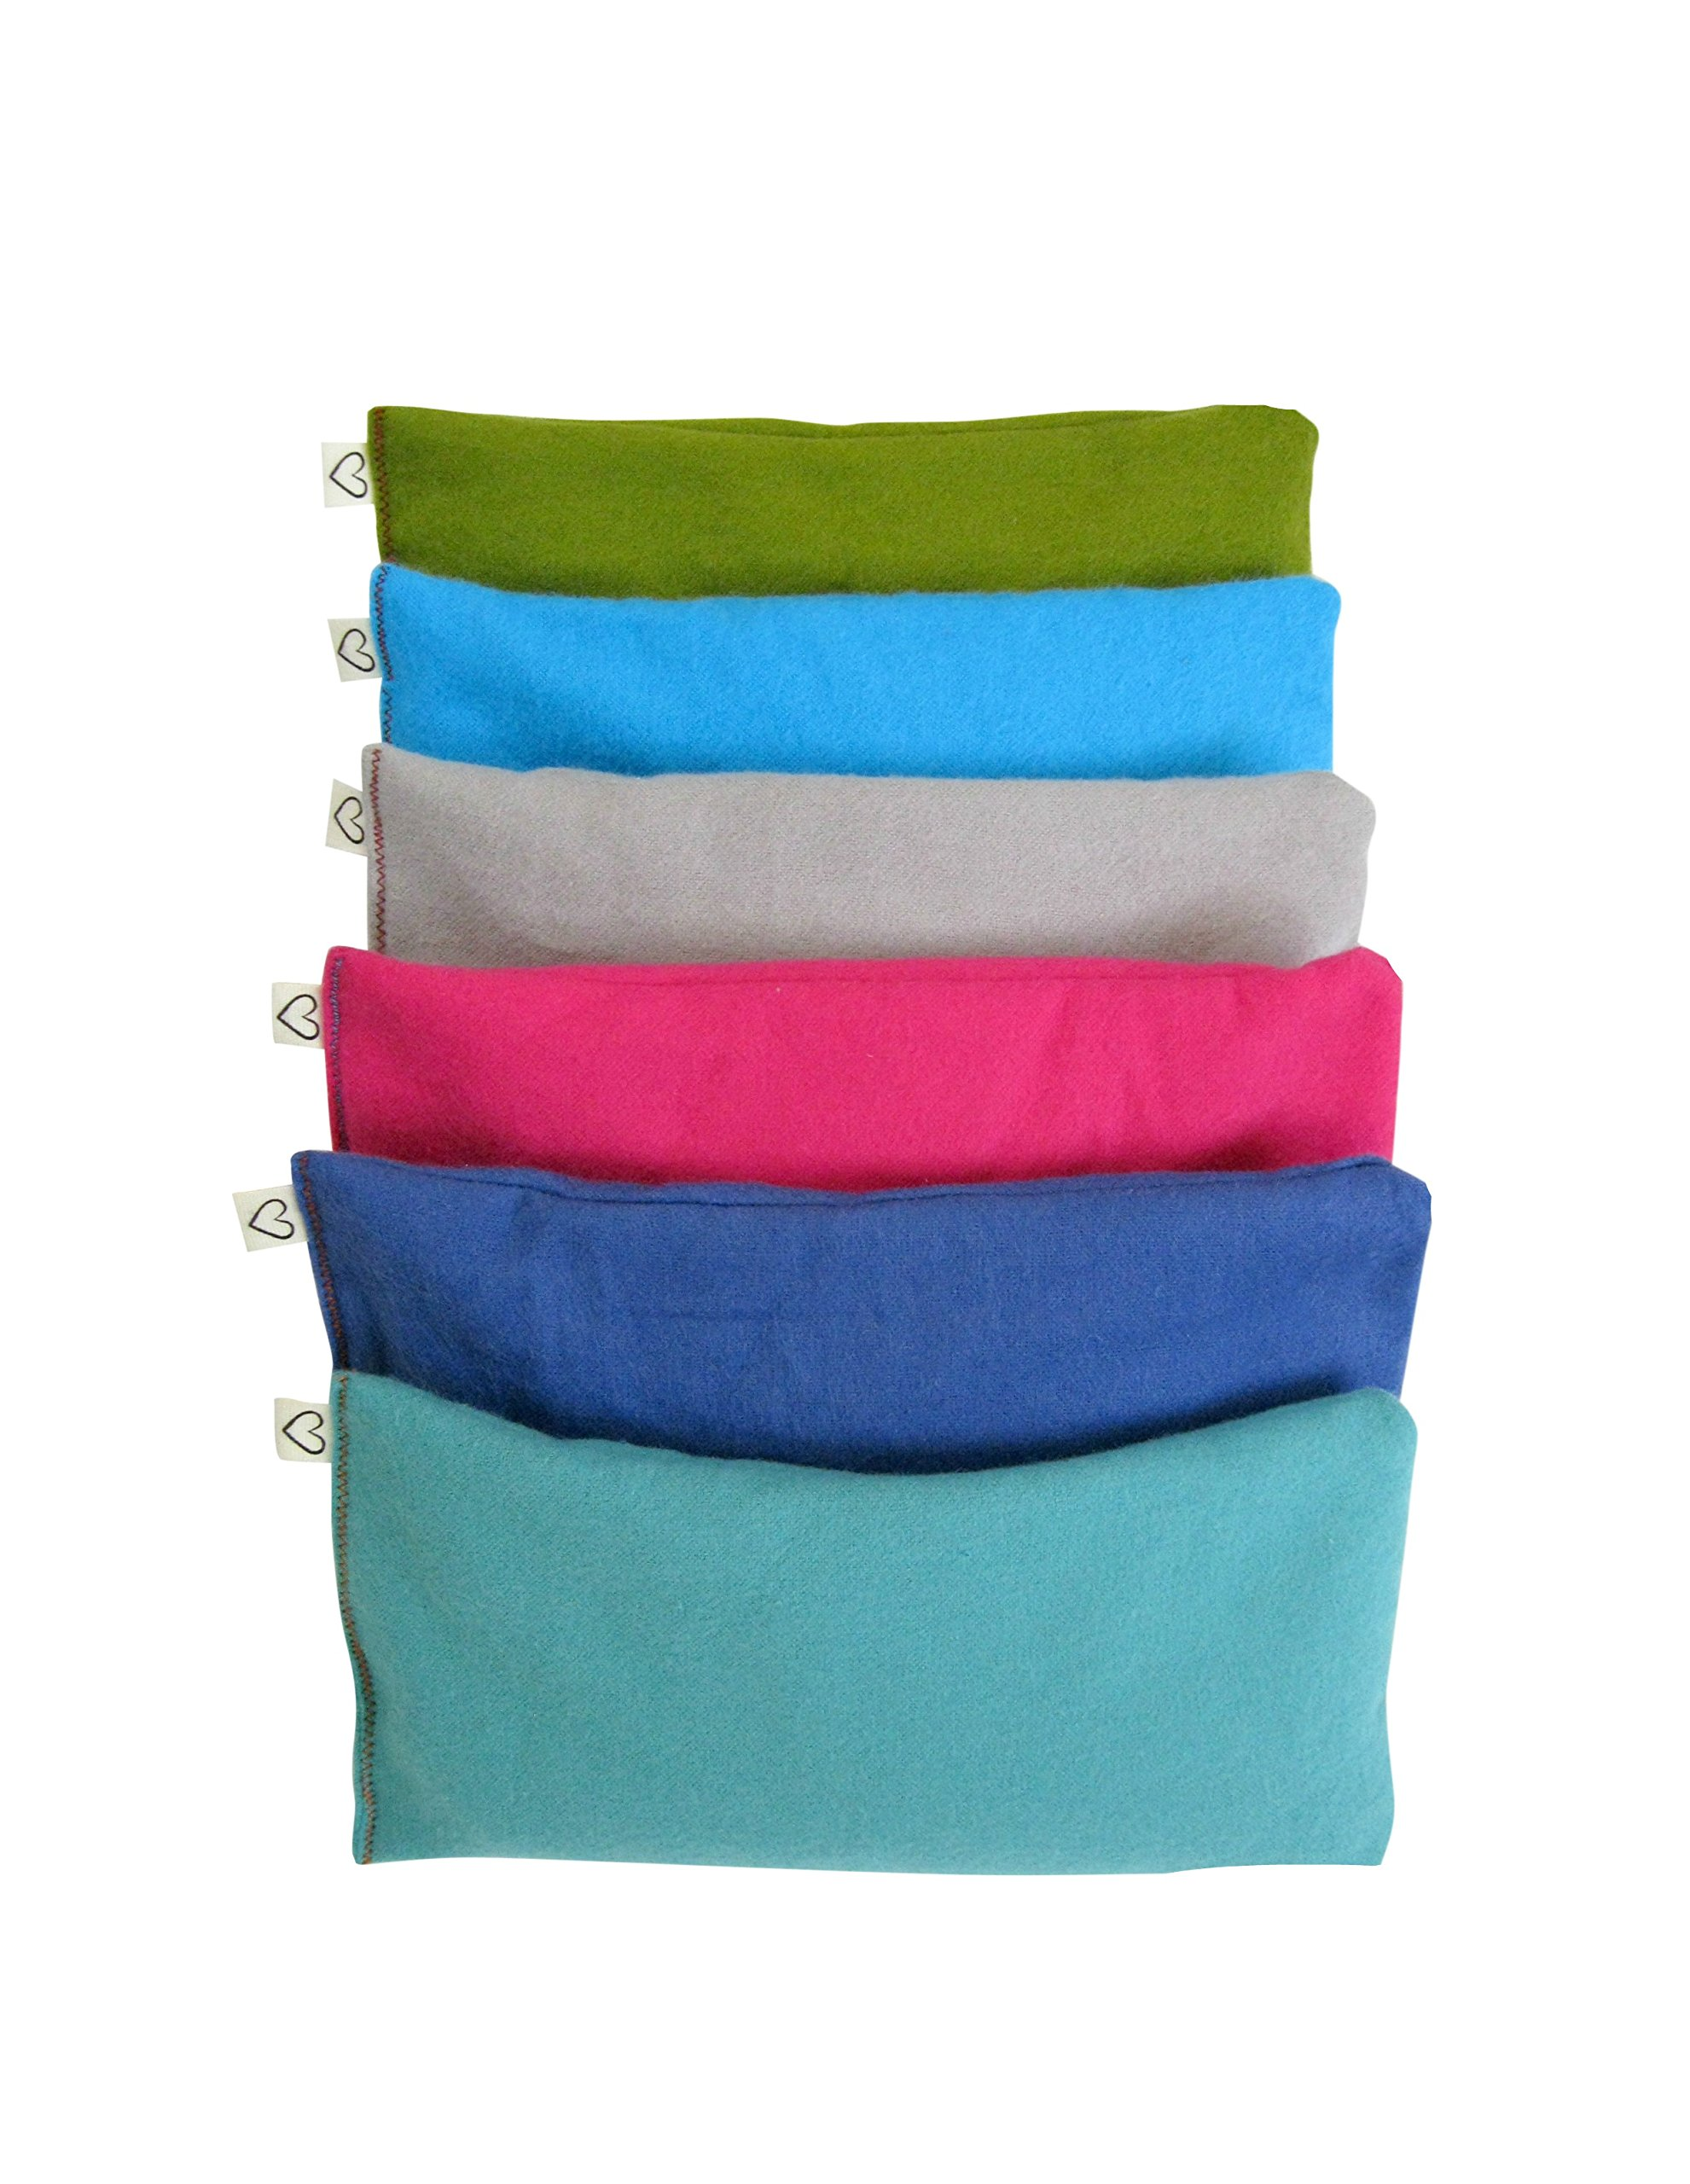 Peacegoods Unscented Organic Flax Seed Eye Pillow - Pack of (6) - Soft Cotton Flannel 4 x 8.5 - Pink Green Purple Gray Fuschia Aqua Turquoise Blue by Peacegoods (Image #1)